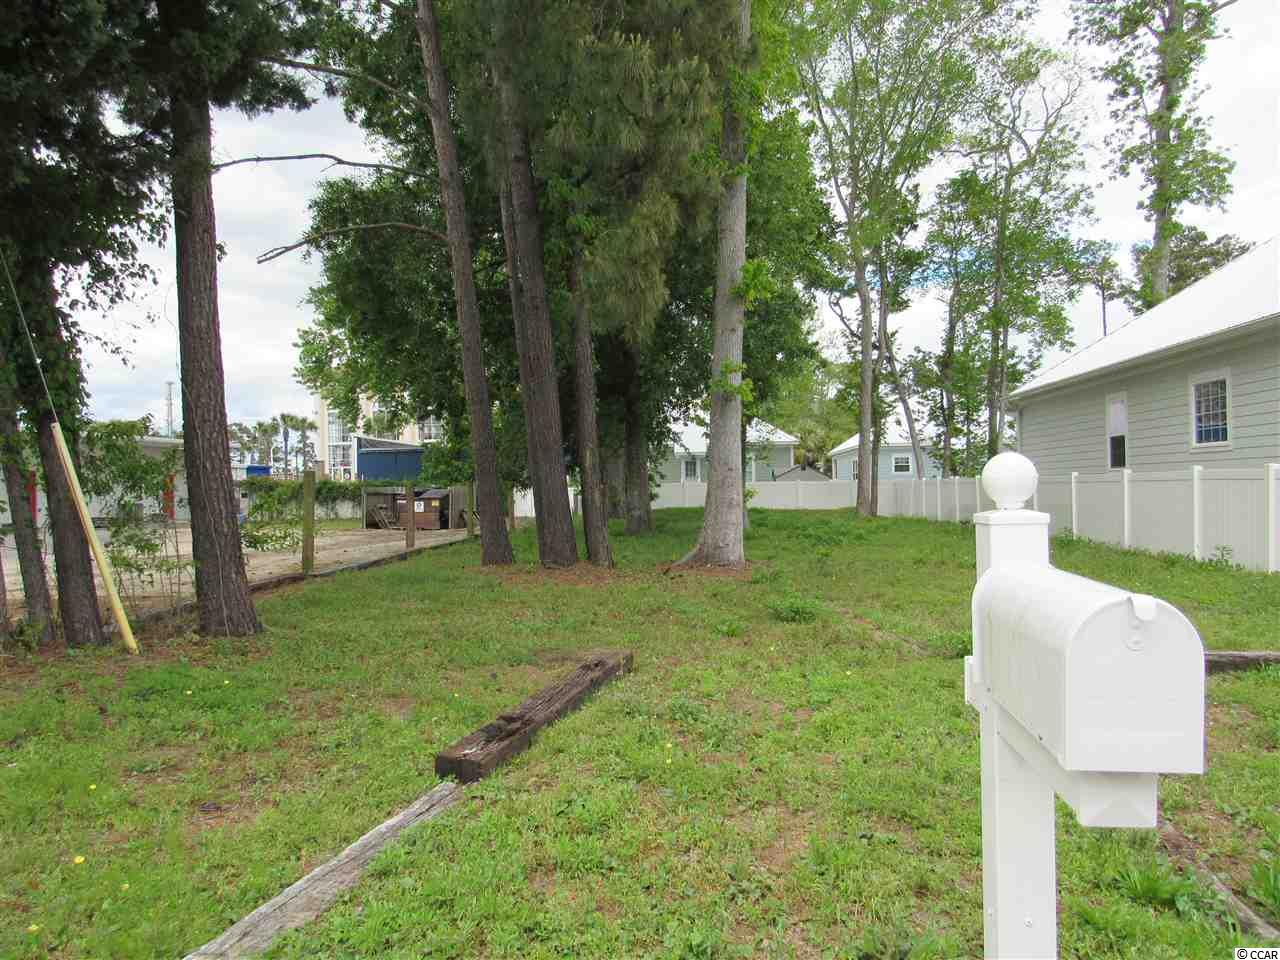 East of 17 Business. Zoned C1. Just a short golf cart ride to the beach. No HOA or time frame to build.